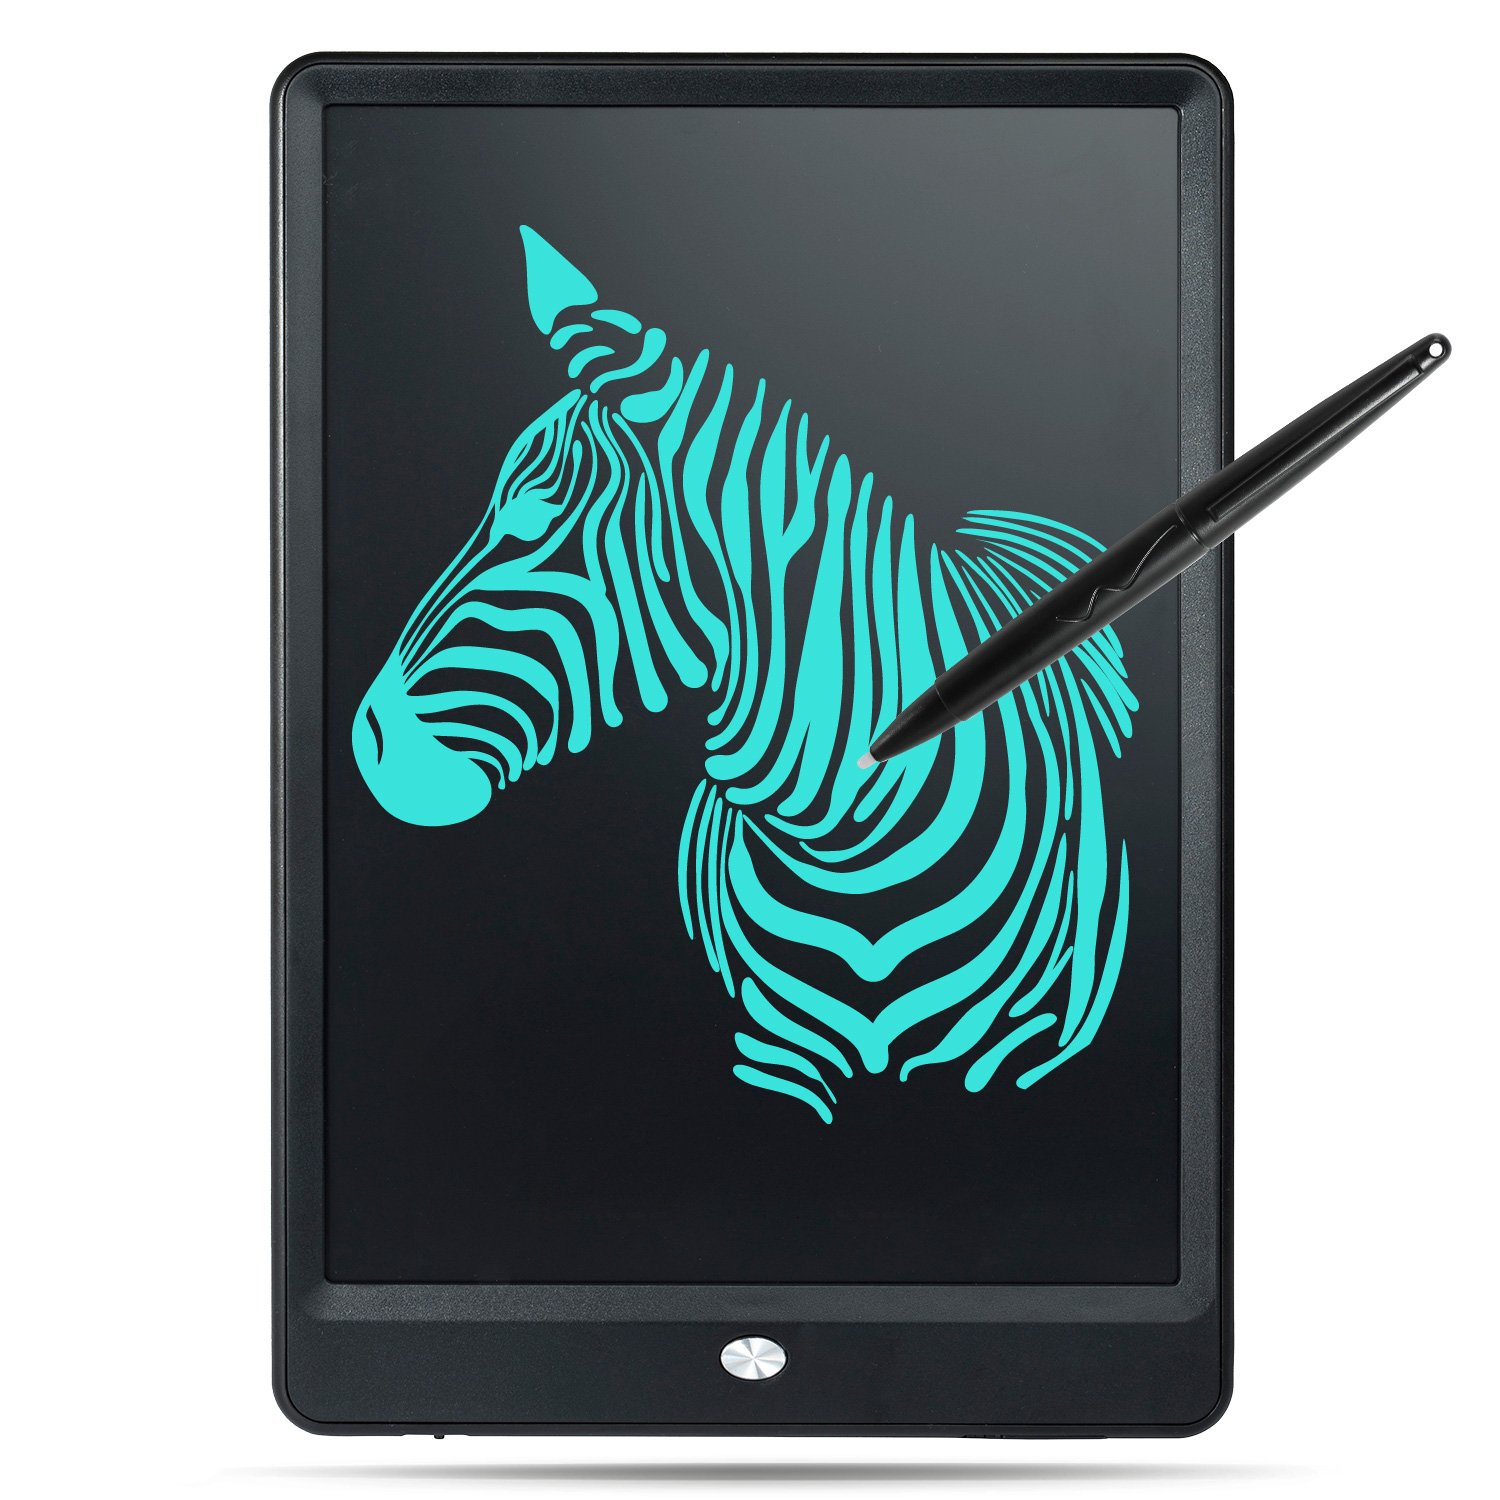 10 Inch LCD Writing Tablet,Digital Drawing Tablet with Case and Stylus for Kids,Office and Family(Black)